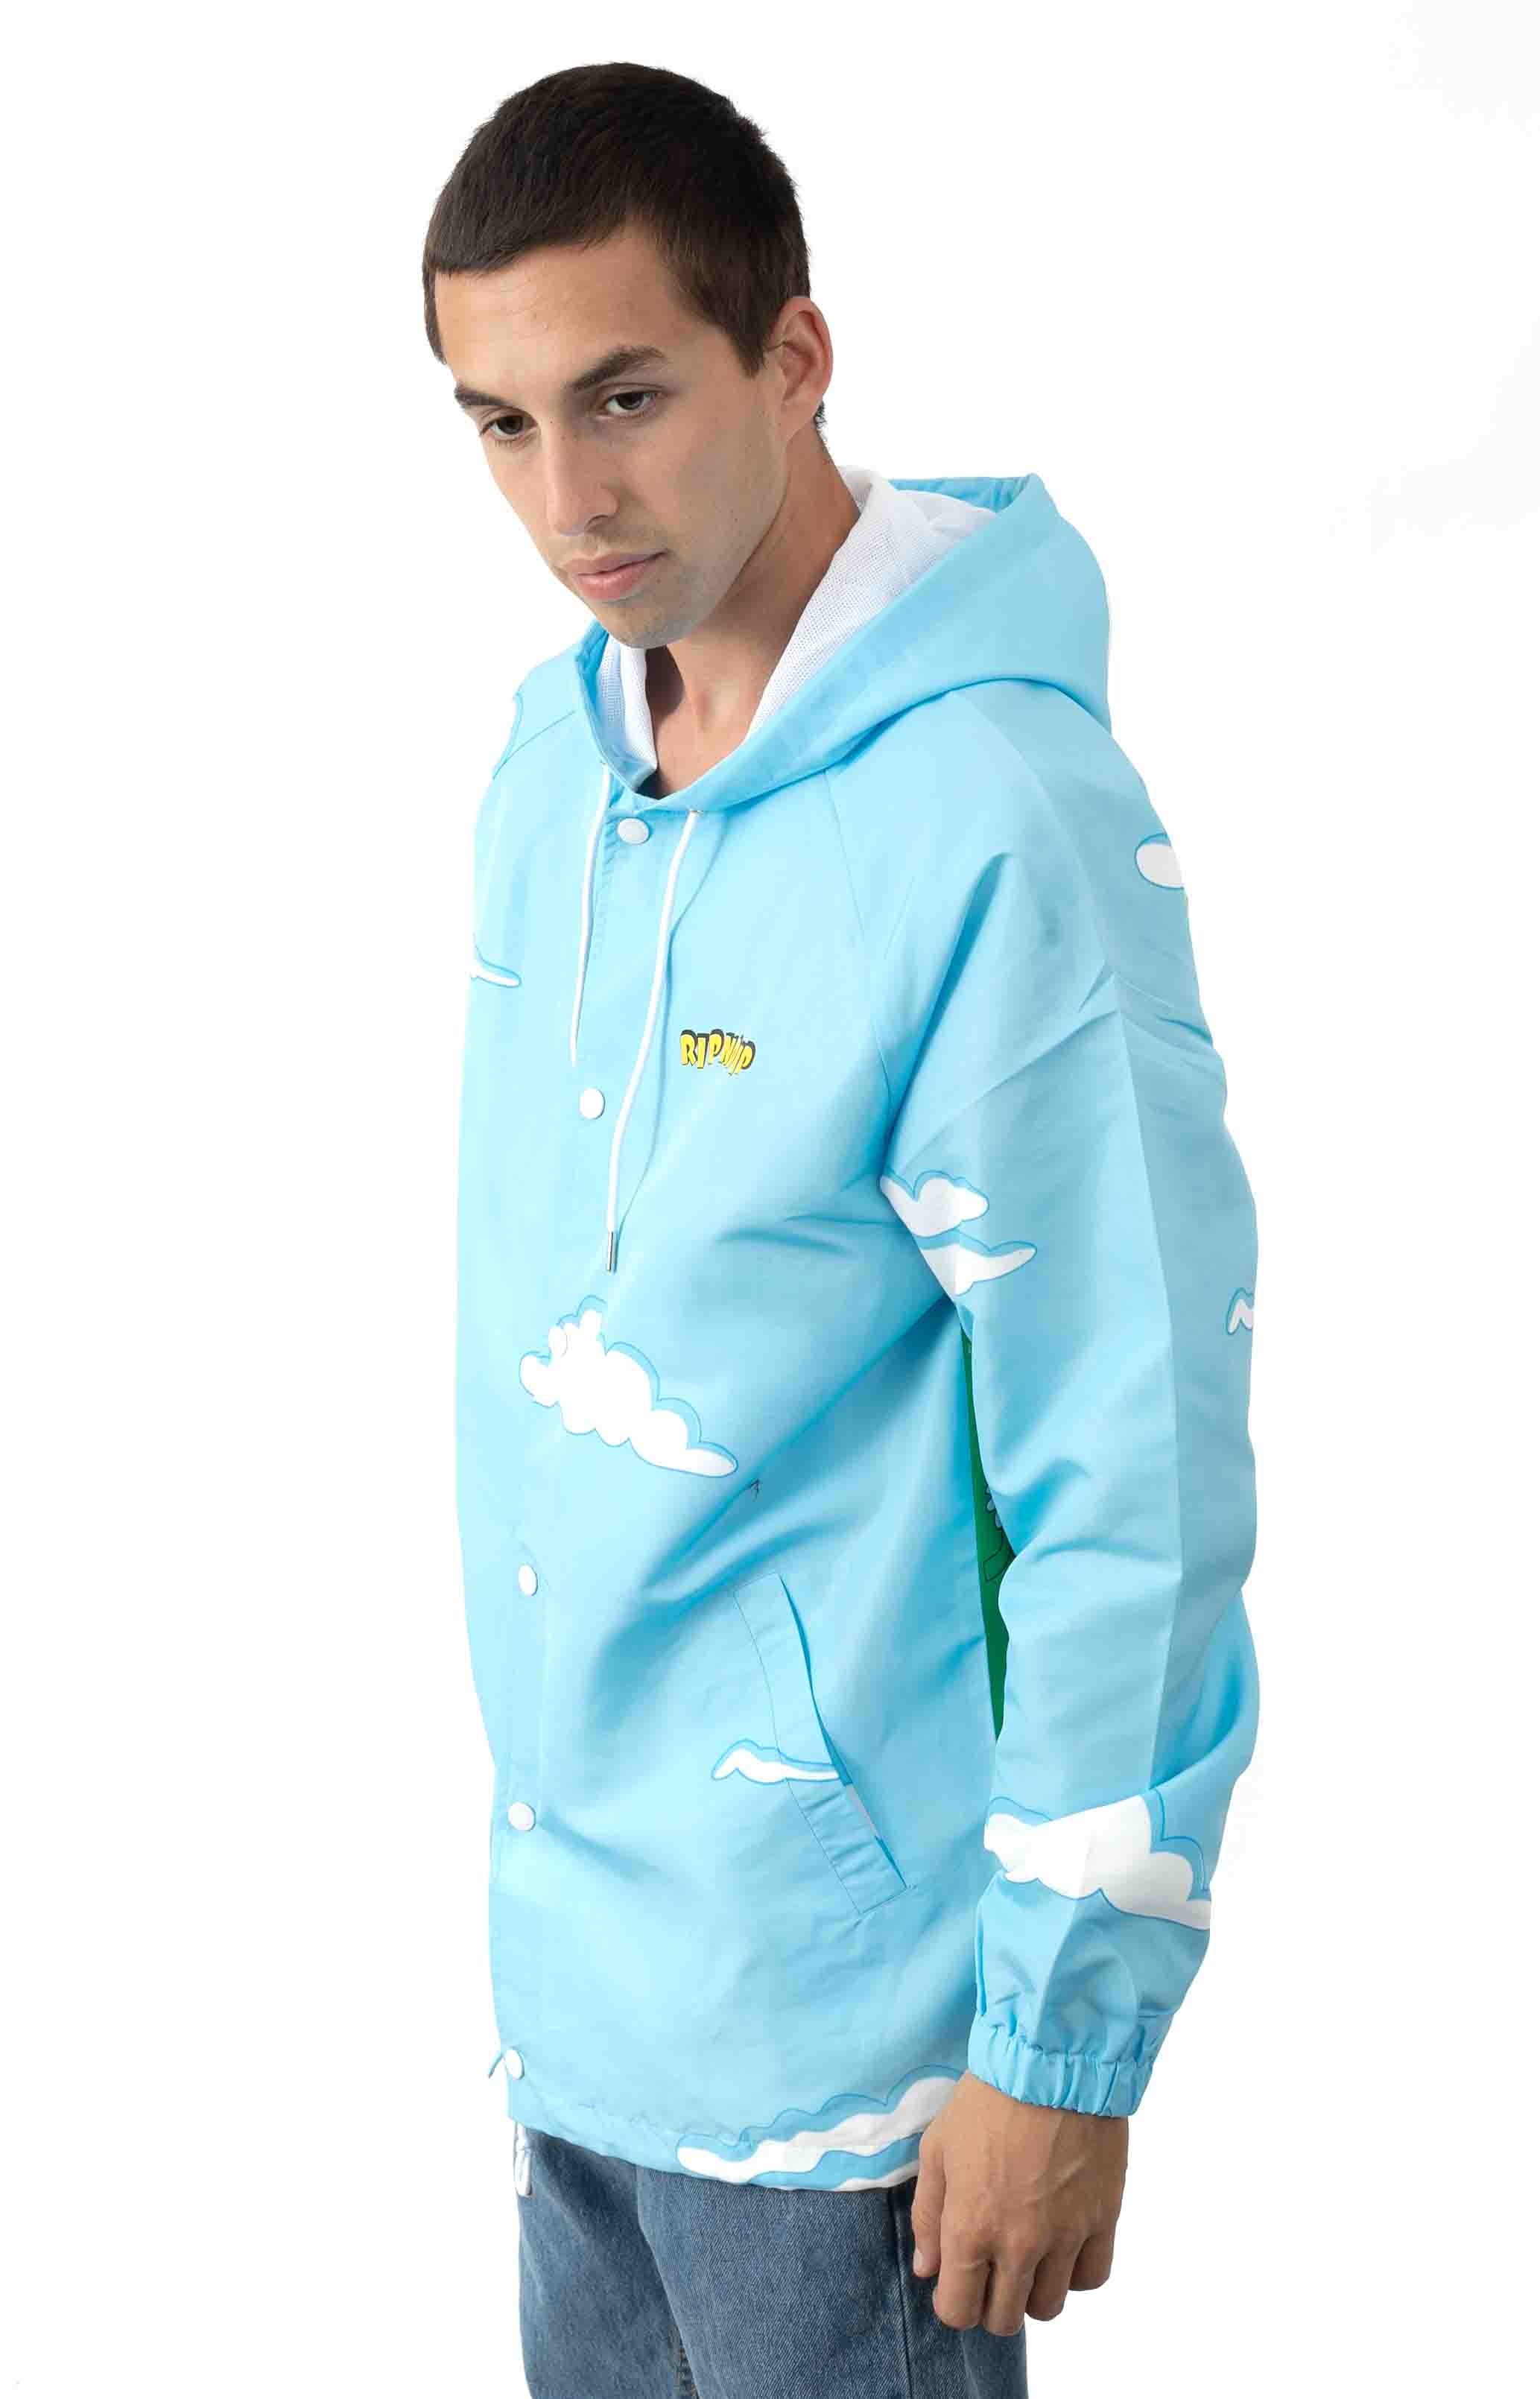 No Place Like Home Hooded Coaches Jacket - Baby Blue  3